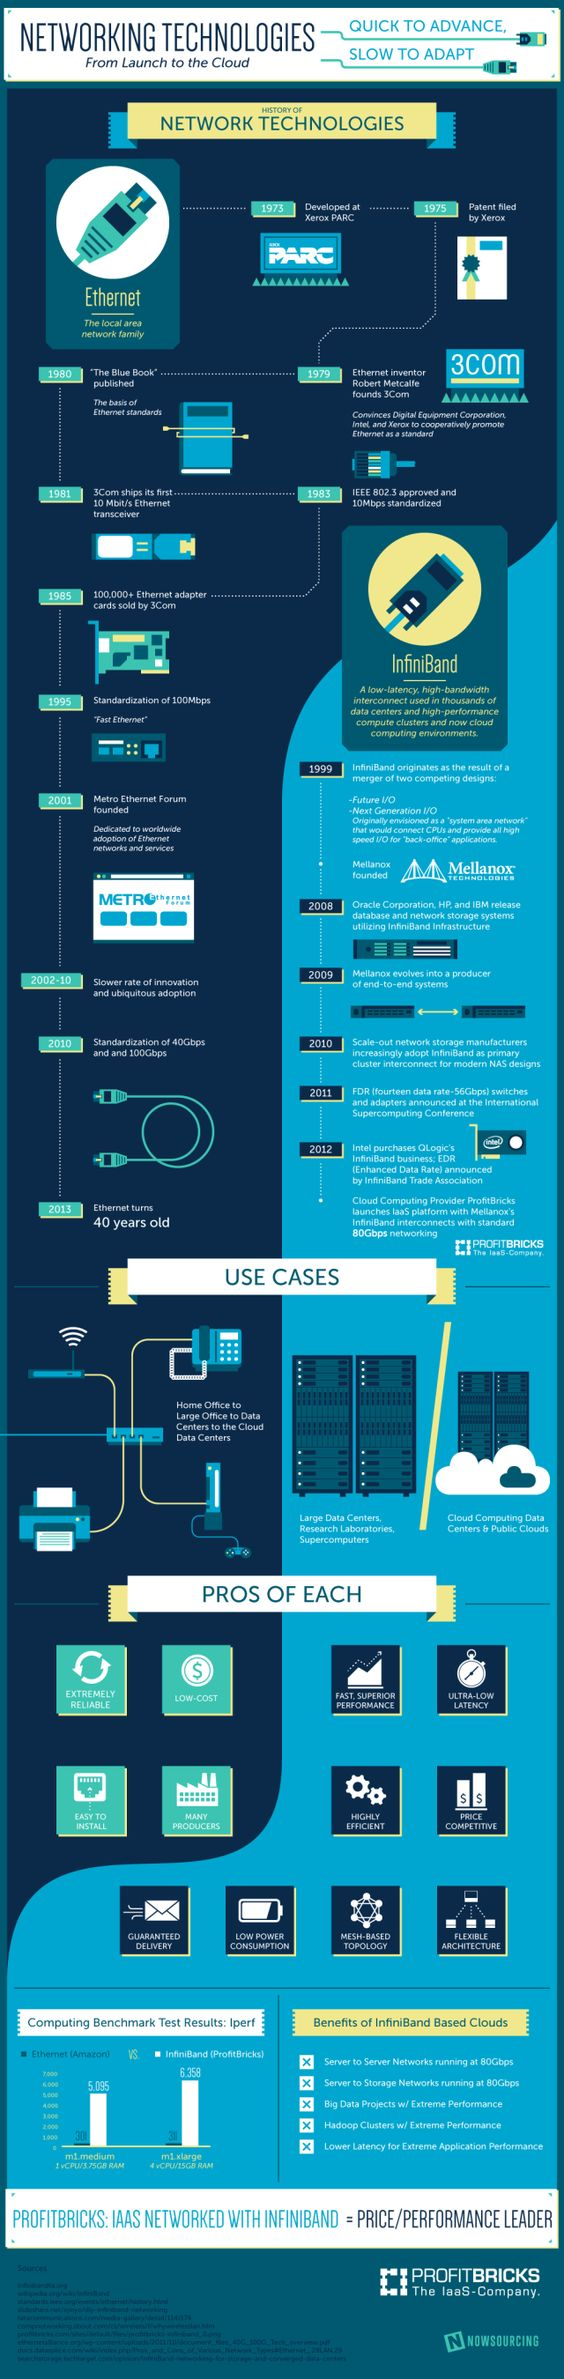 Networking technologies #infografia #infographic http://arideocean.com: